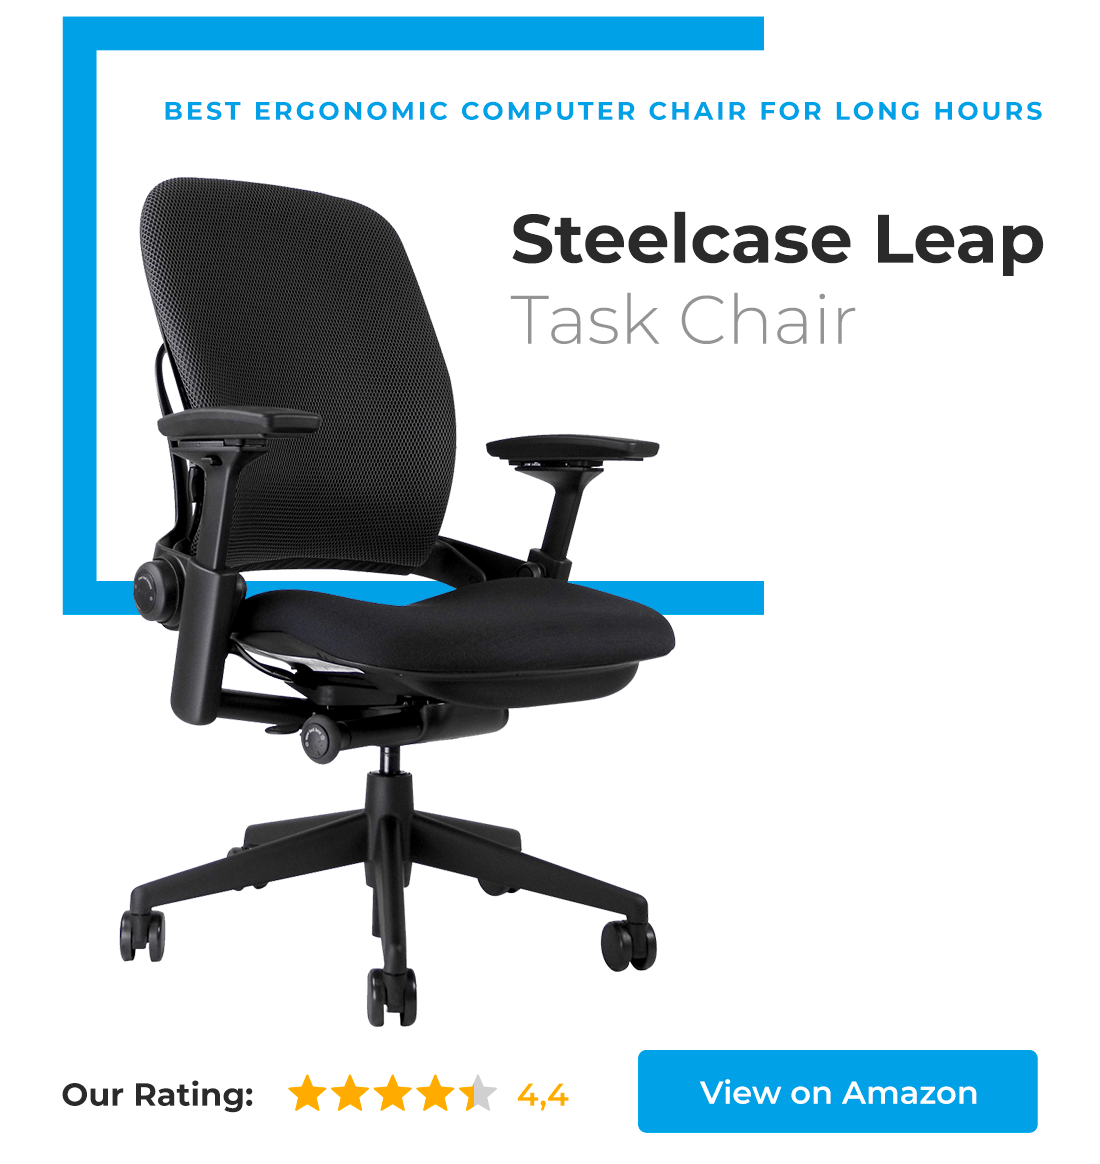 Steelcase Leap Task Chair  sc 1 th 231 & ? 14 New u0026 Best Office Chairs in 2018 | Under $100 $200 u0026 High-End